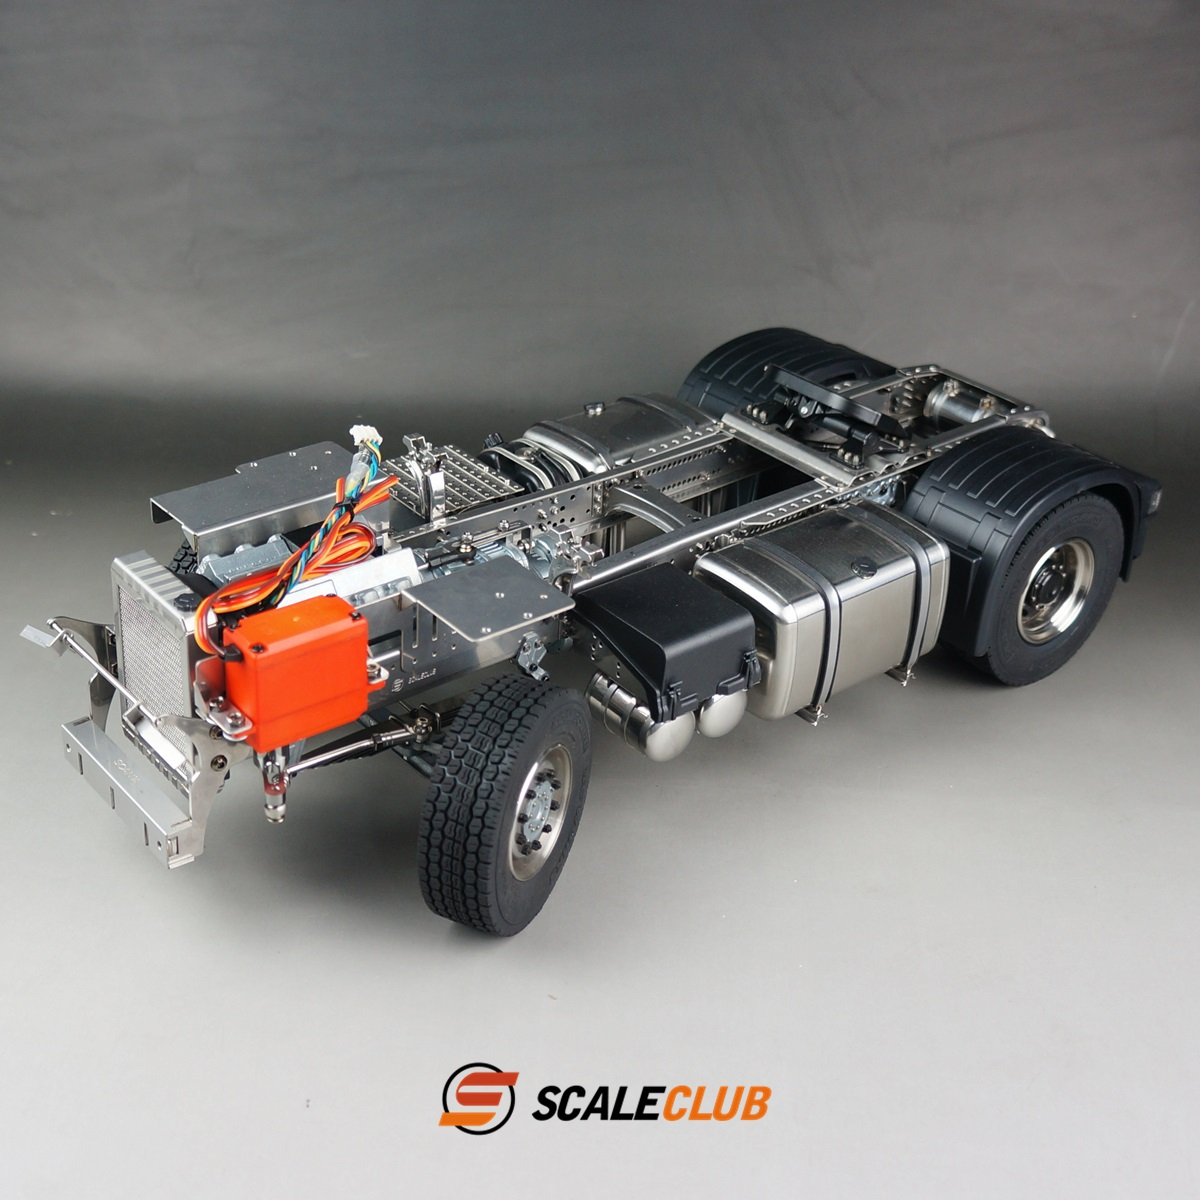 SCALECLUB  Scania  Truck chassis all metal